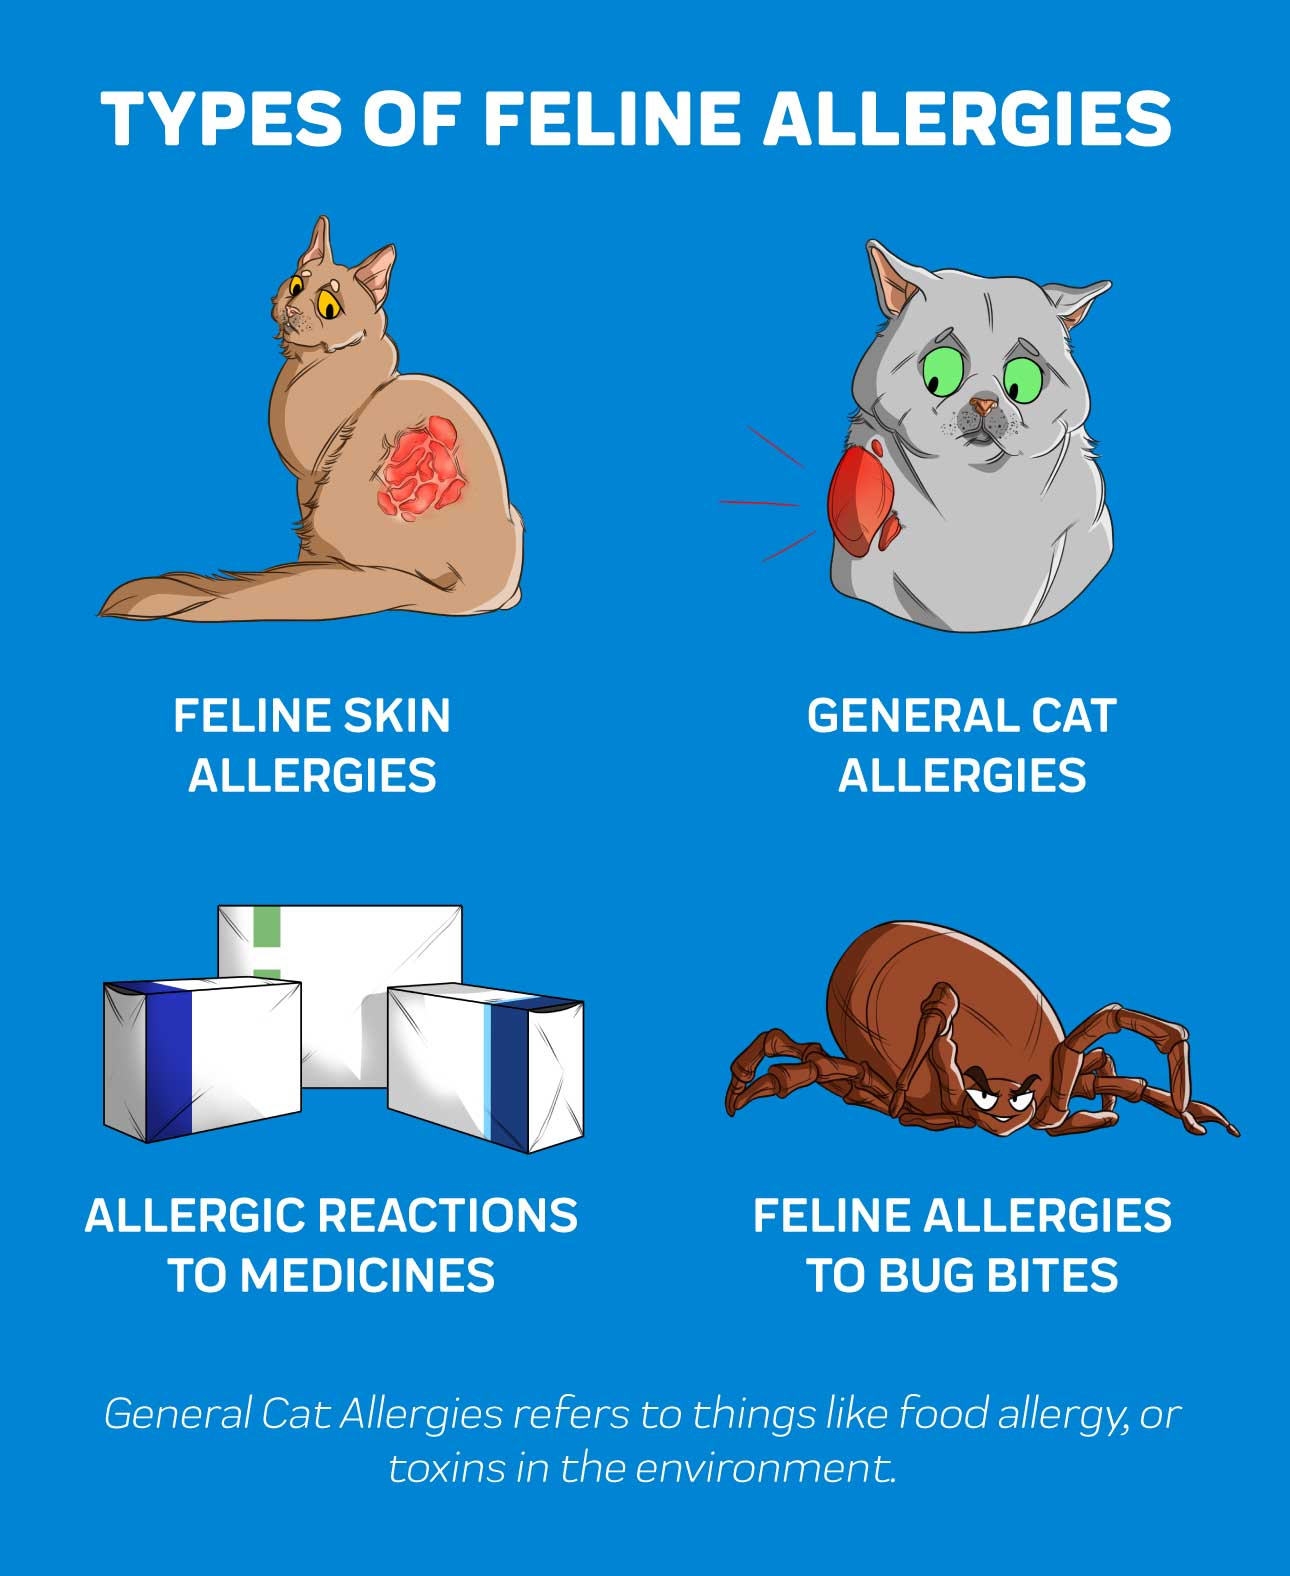 Types of Feline Allergies